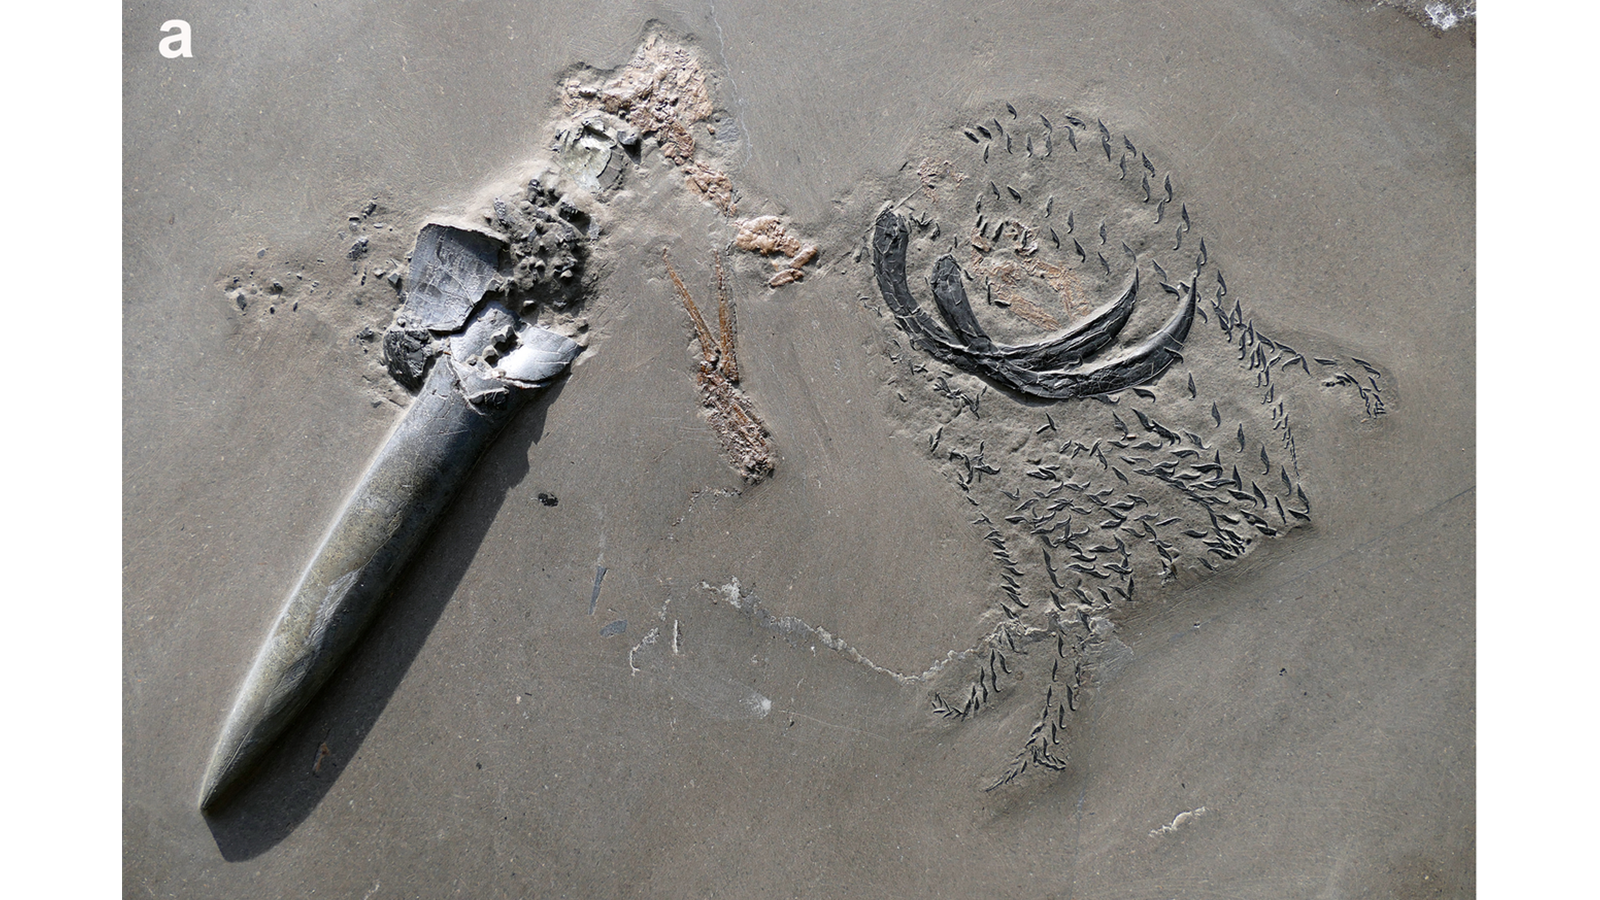 The fossil of the crustacean and squid